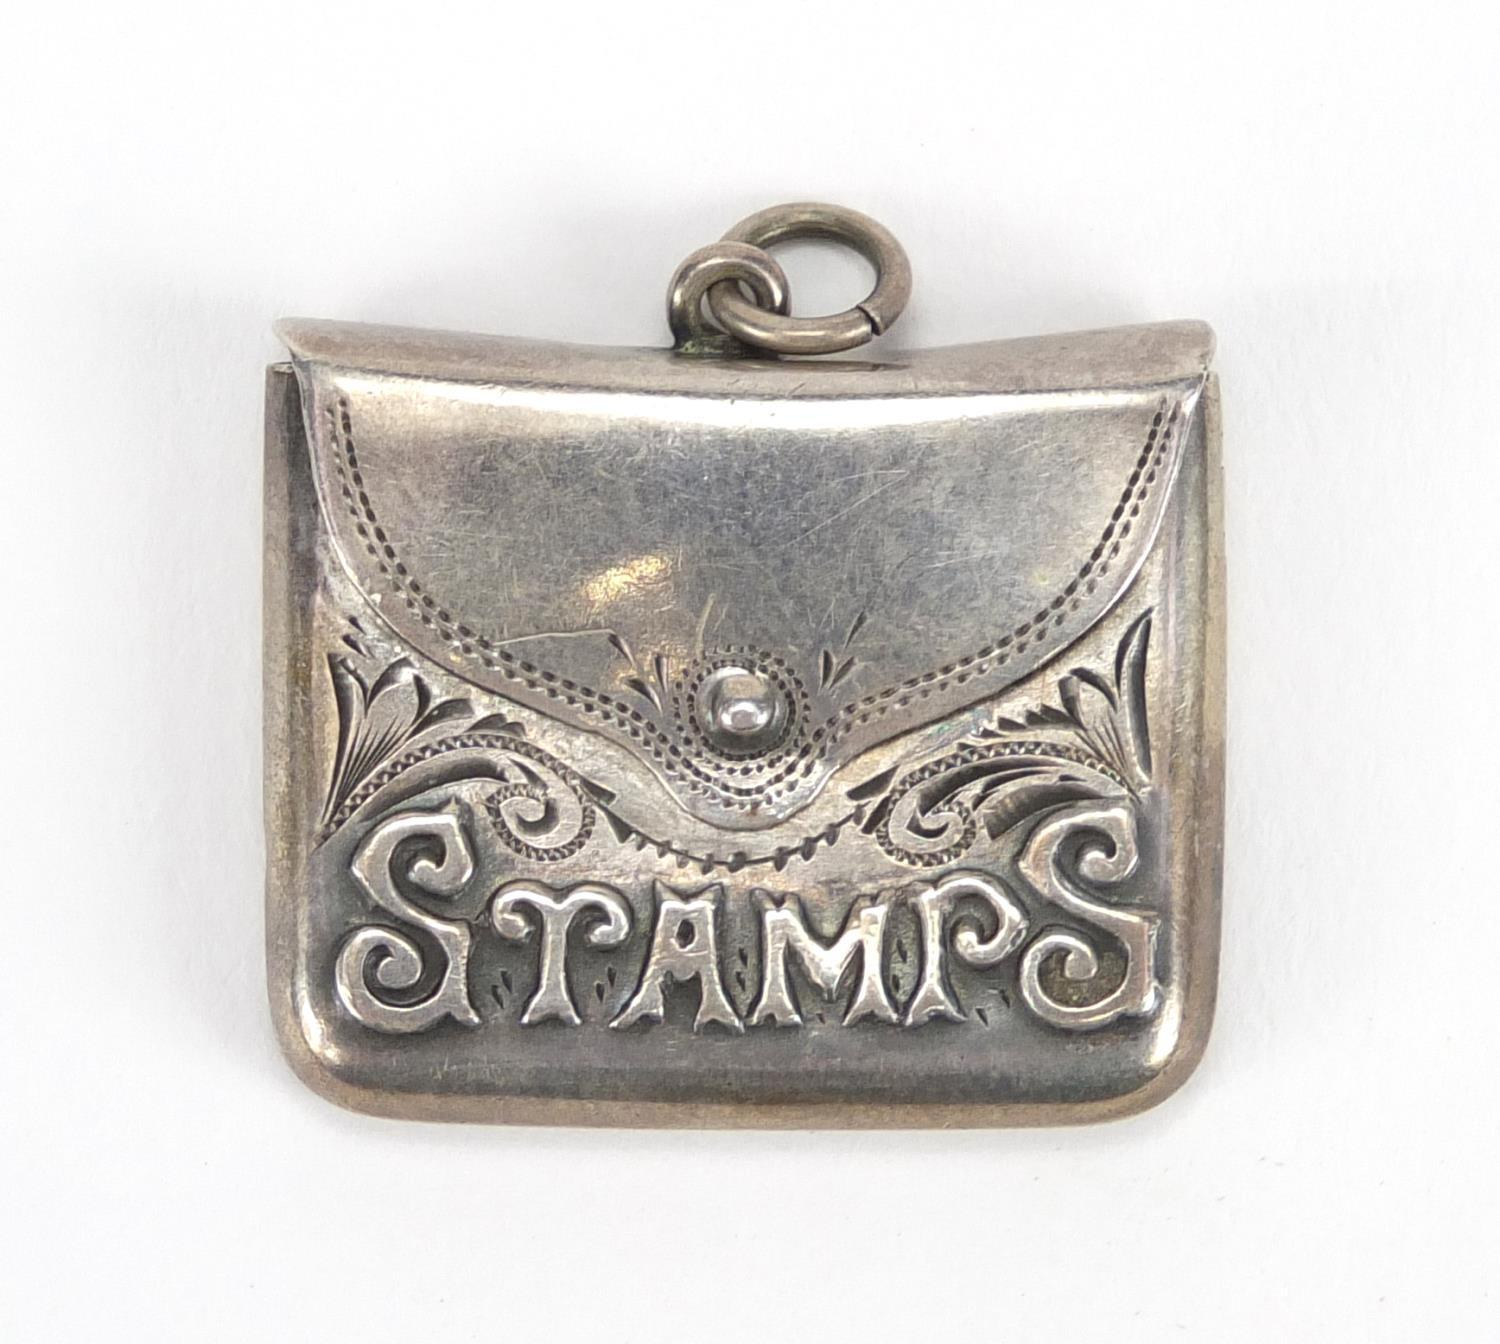 Lot 938 - Rectangular silver stamp box pendant, 3cm in length : For Further Condition Reports Please visit our